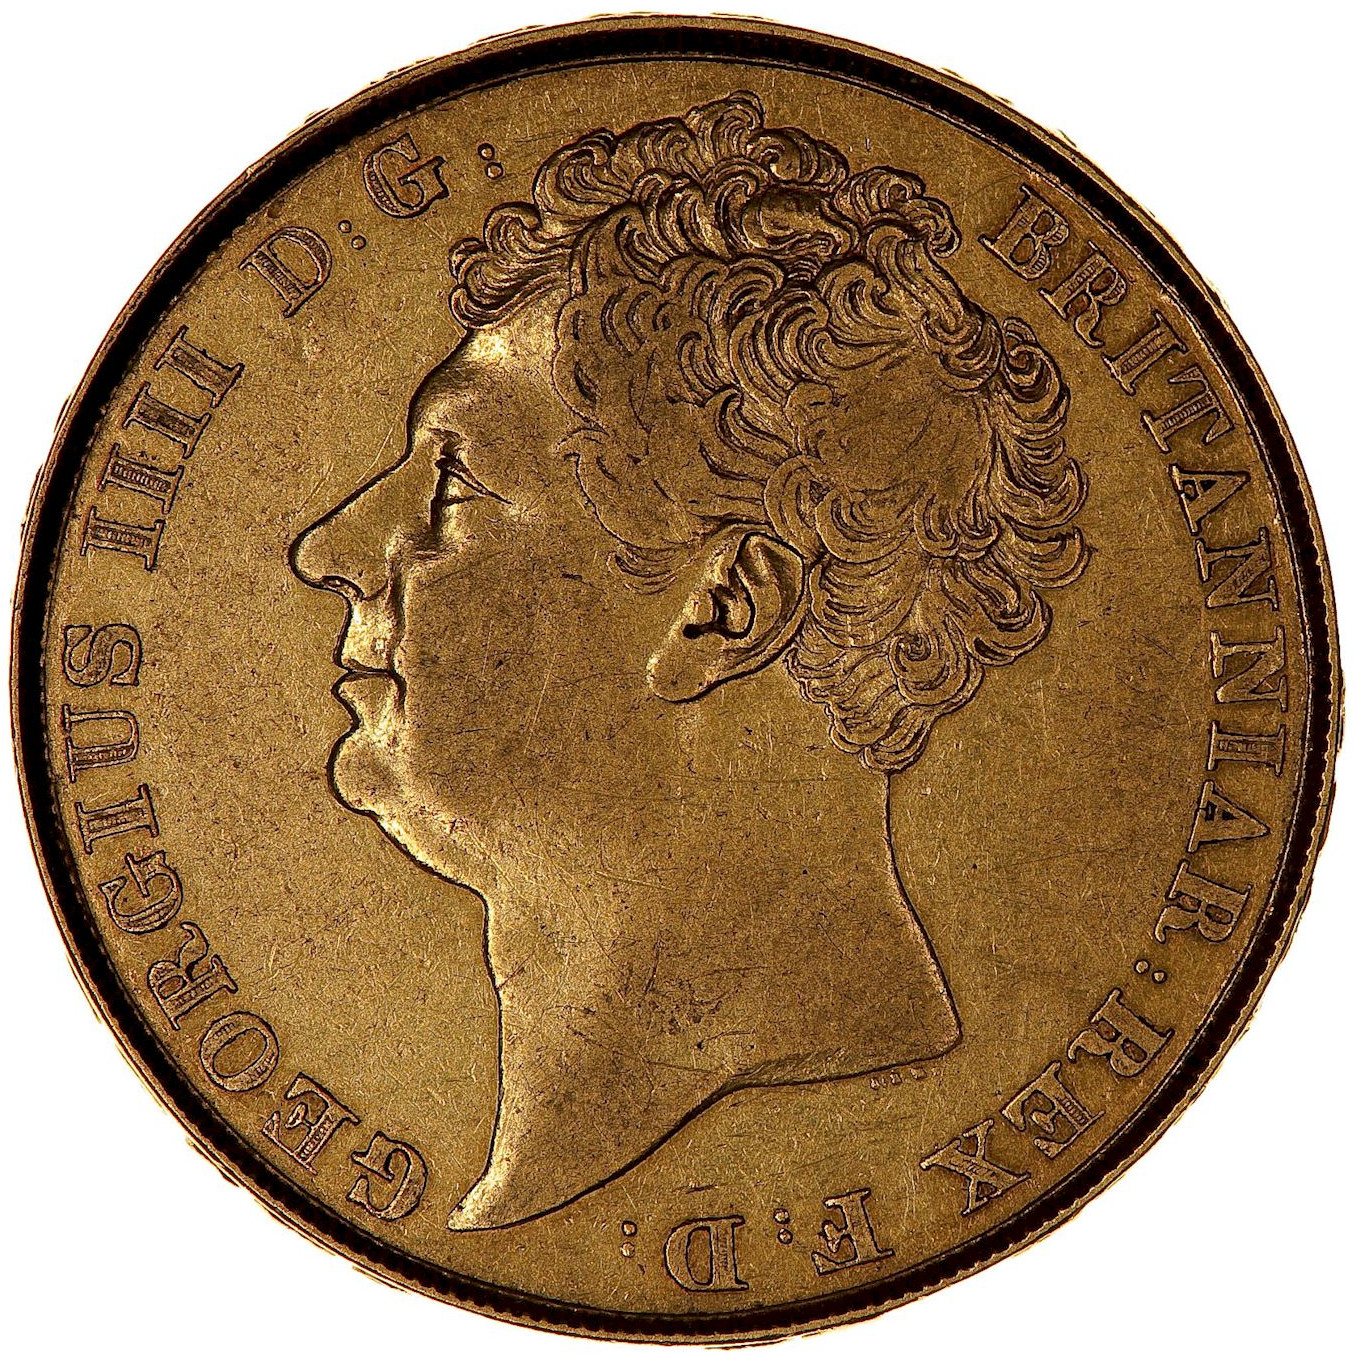 Two Pounds (Pre-decimal): Photo Coin - 2 Pounds, George IV, Great Britain, 1823